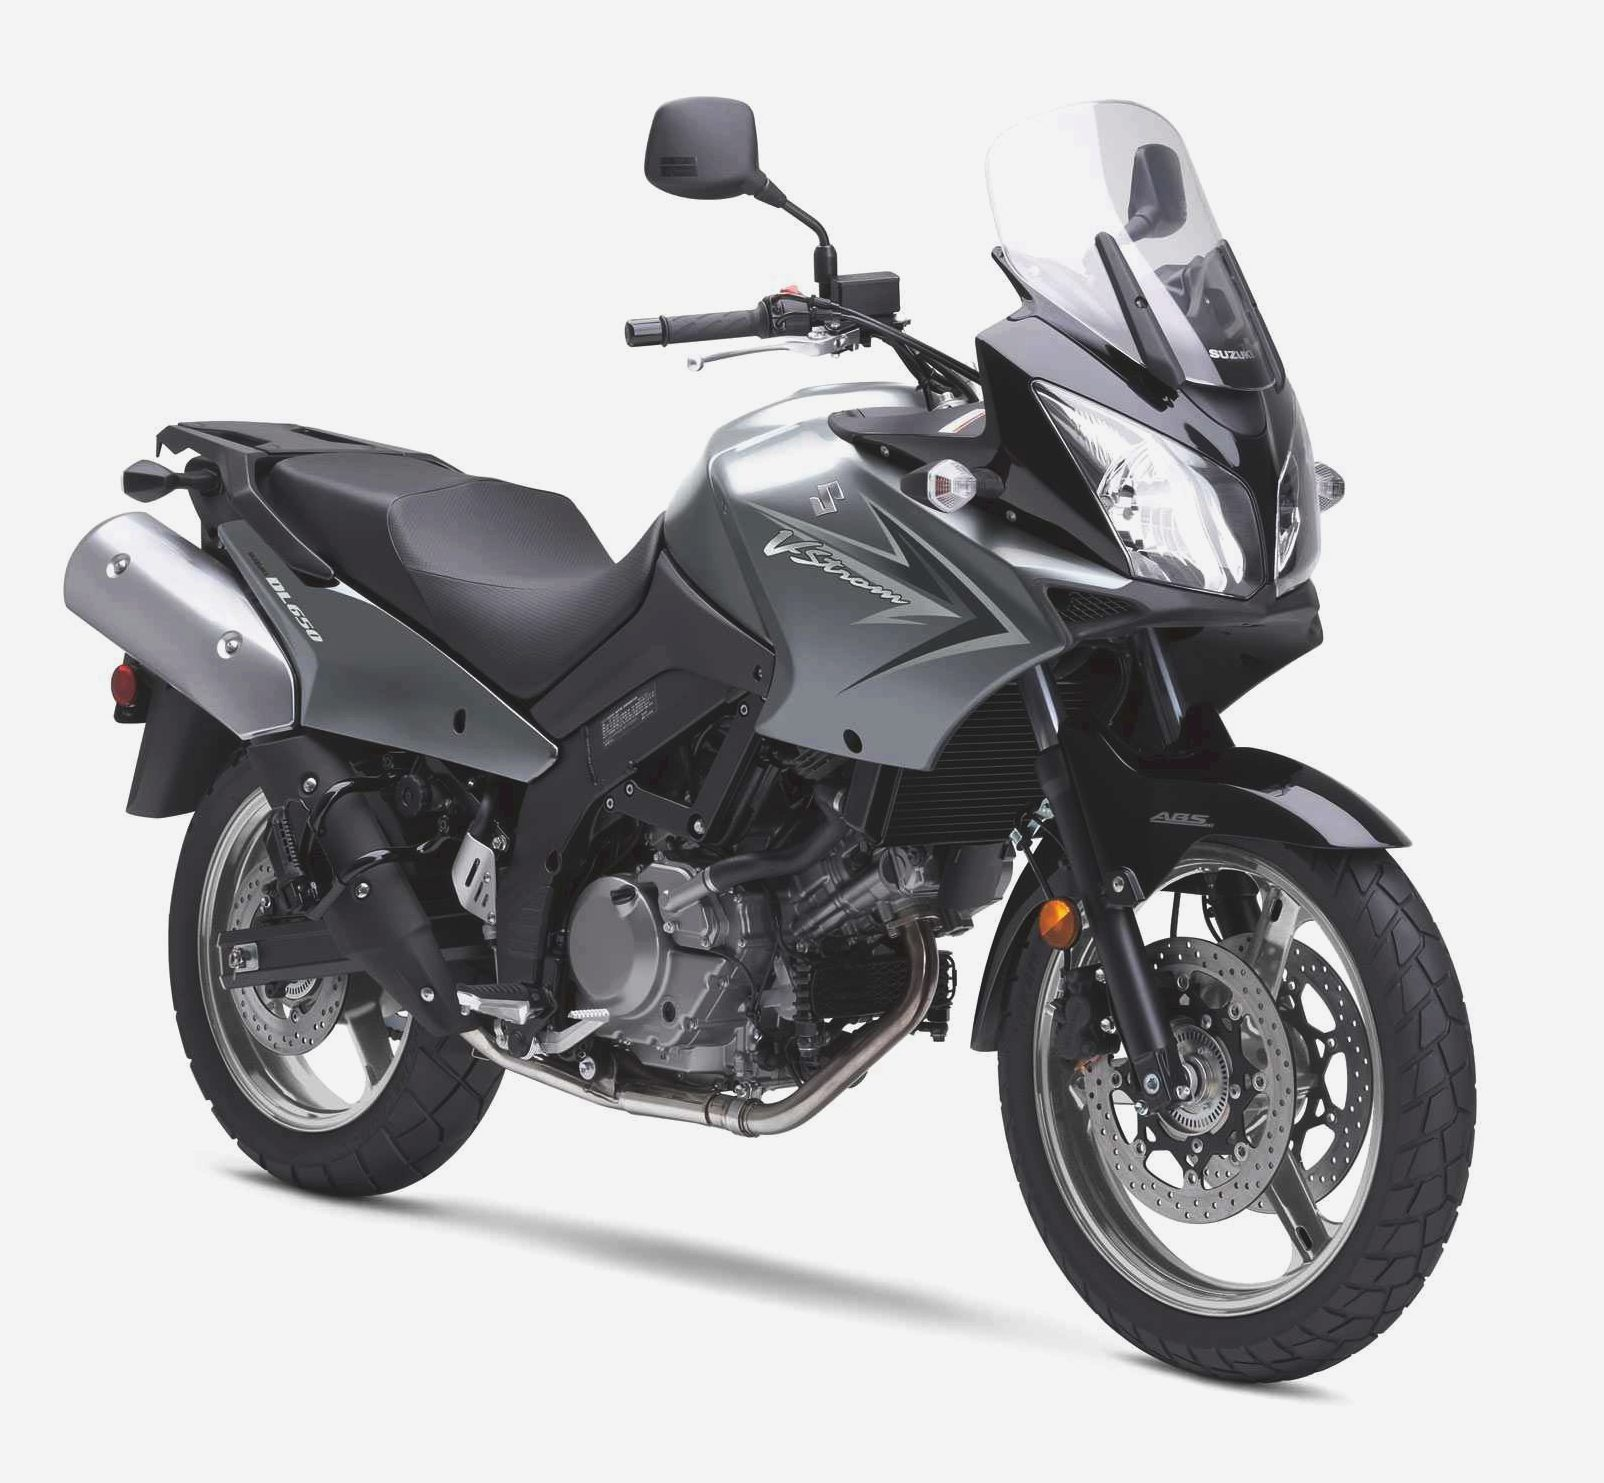 2010 Suzuki DL650 V-Strom Service Manual